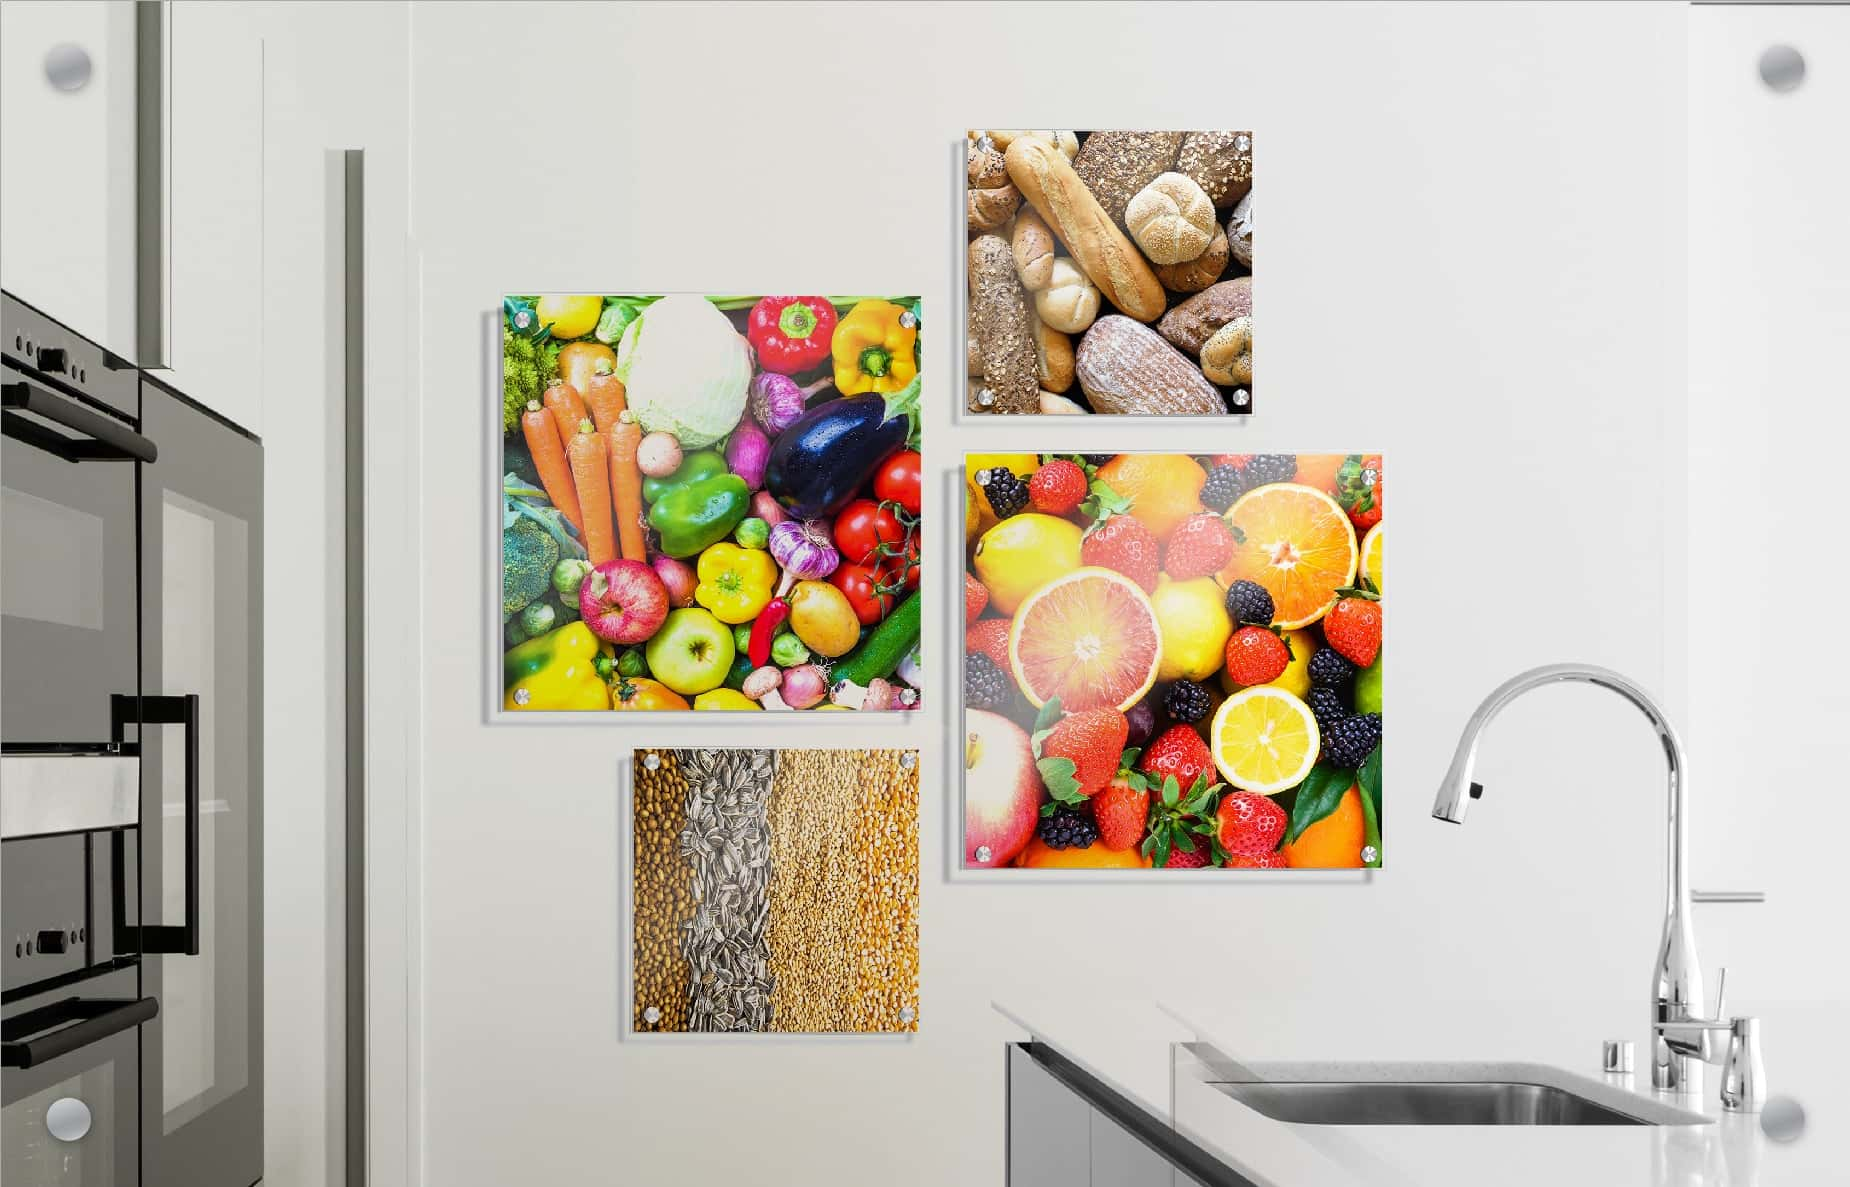 Sample image of Wallkeepers finished product. Four photos in a grid overlayed on to an interior wall.